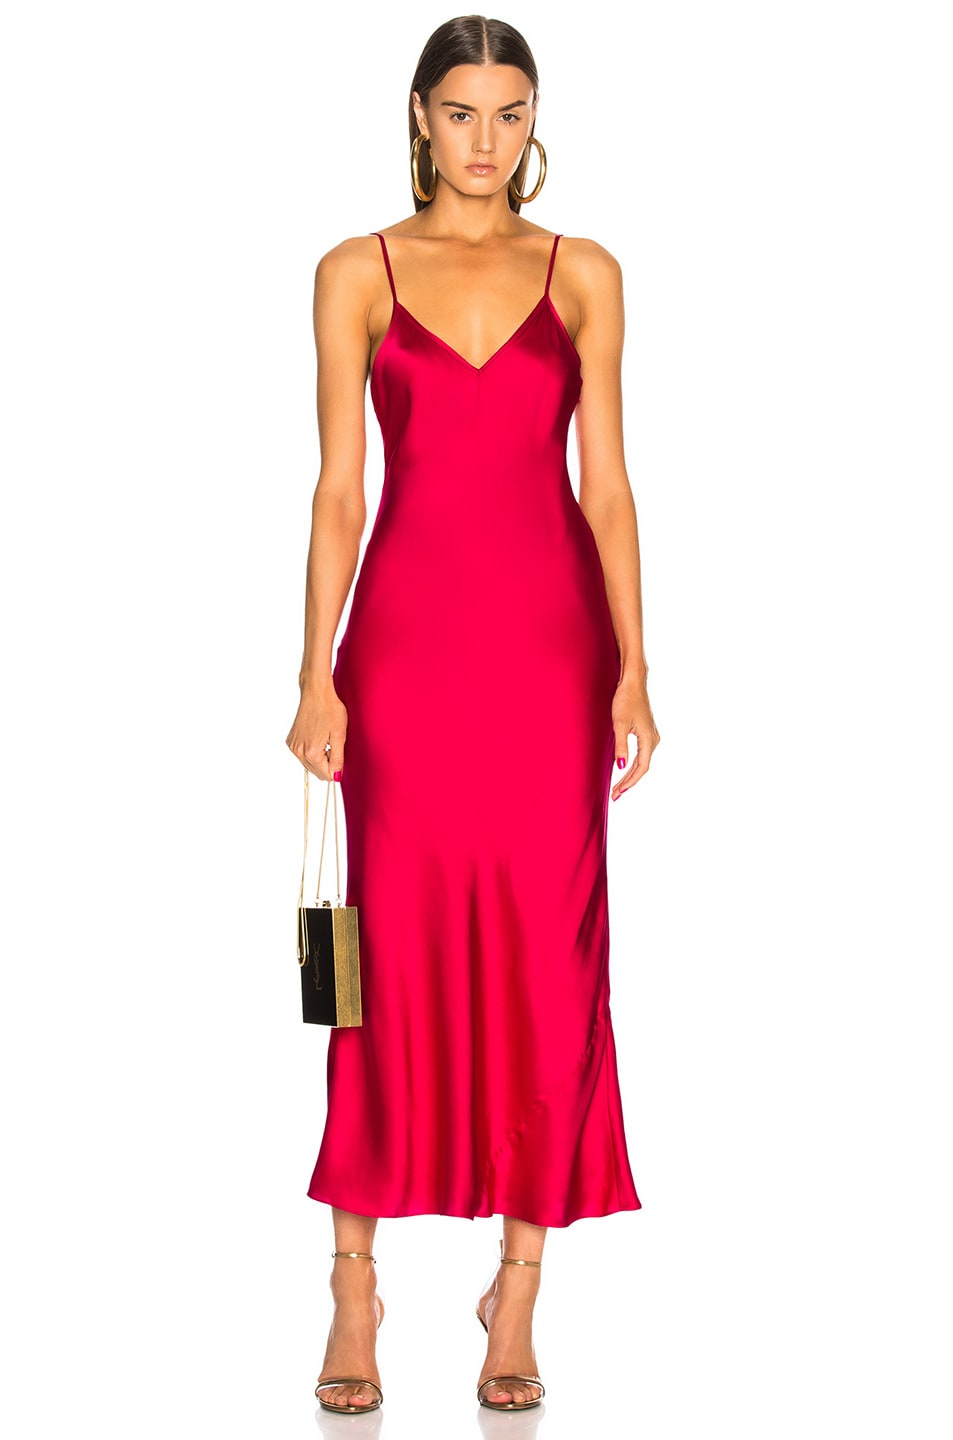 5cd3e3f079f Image 1 of Cinq a Sept Solid Emmalyn Dress in Camilla Red